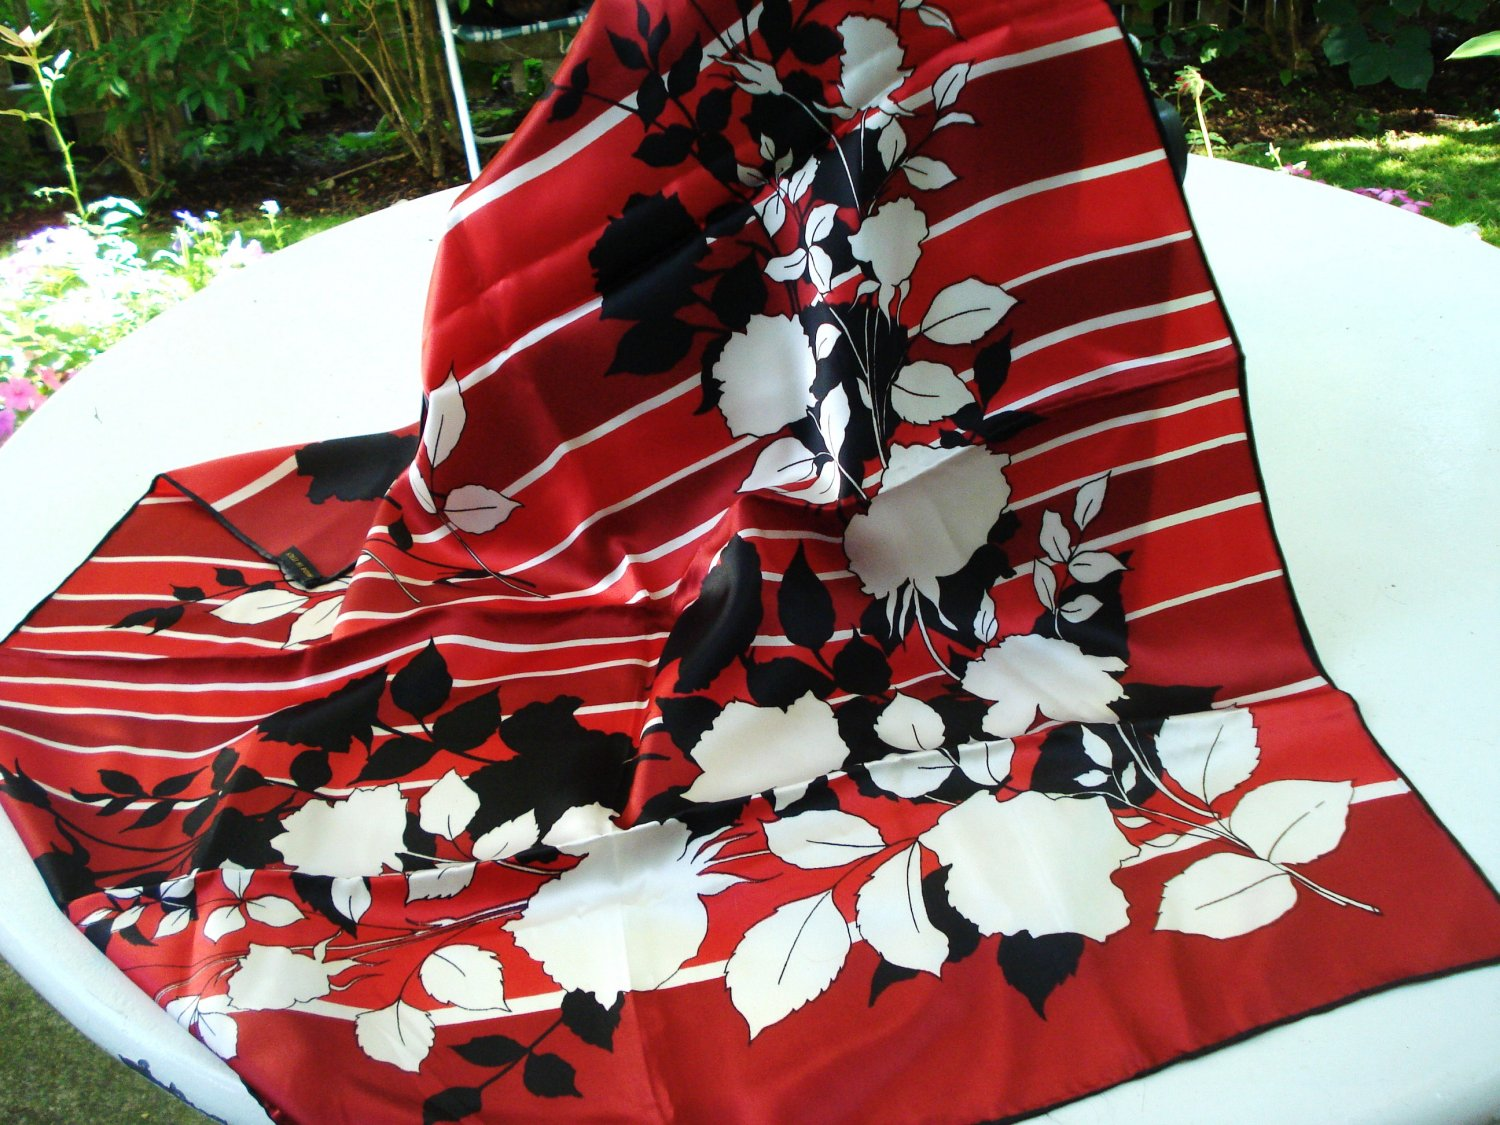 Acetate satin scarf large square shadow flowers on reds made Italy vintage ll3197